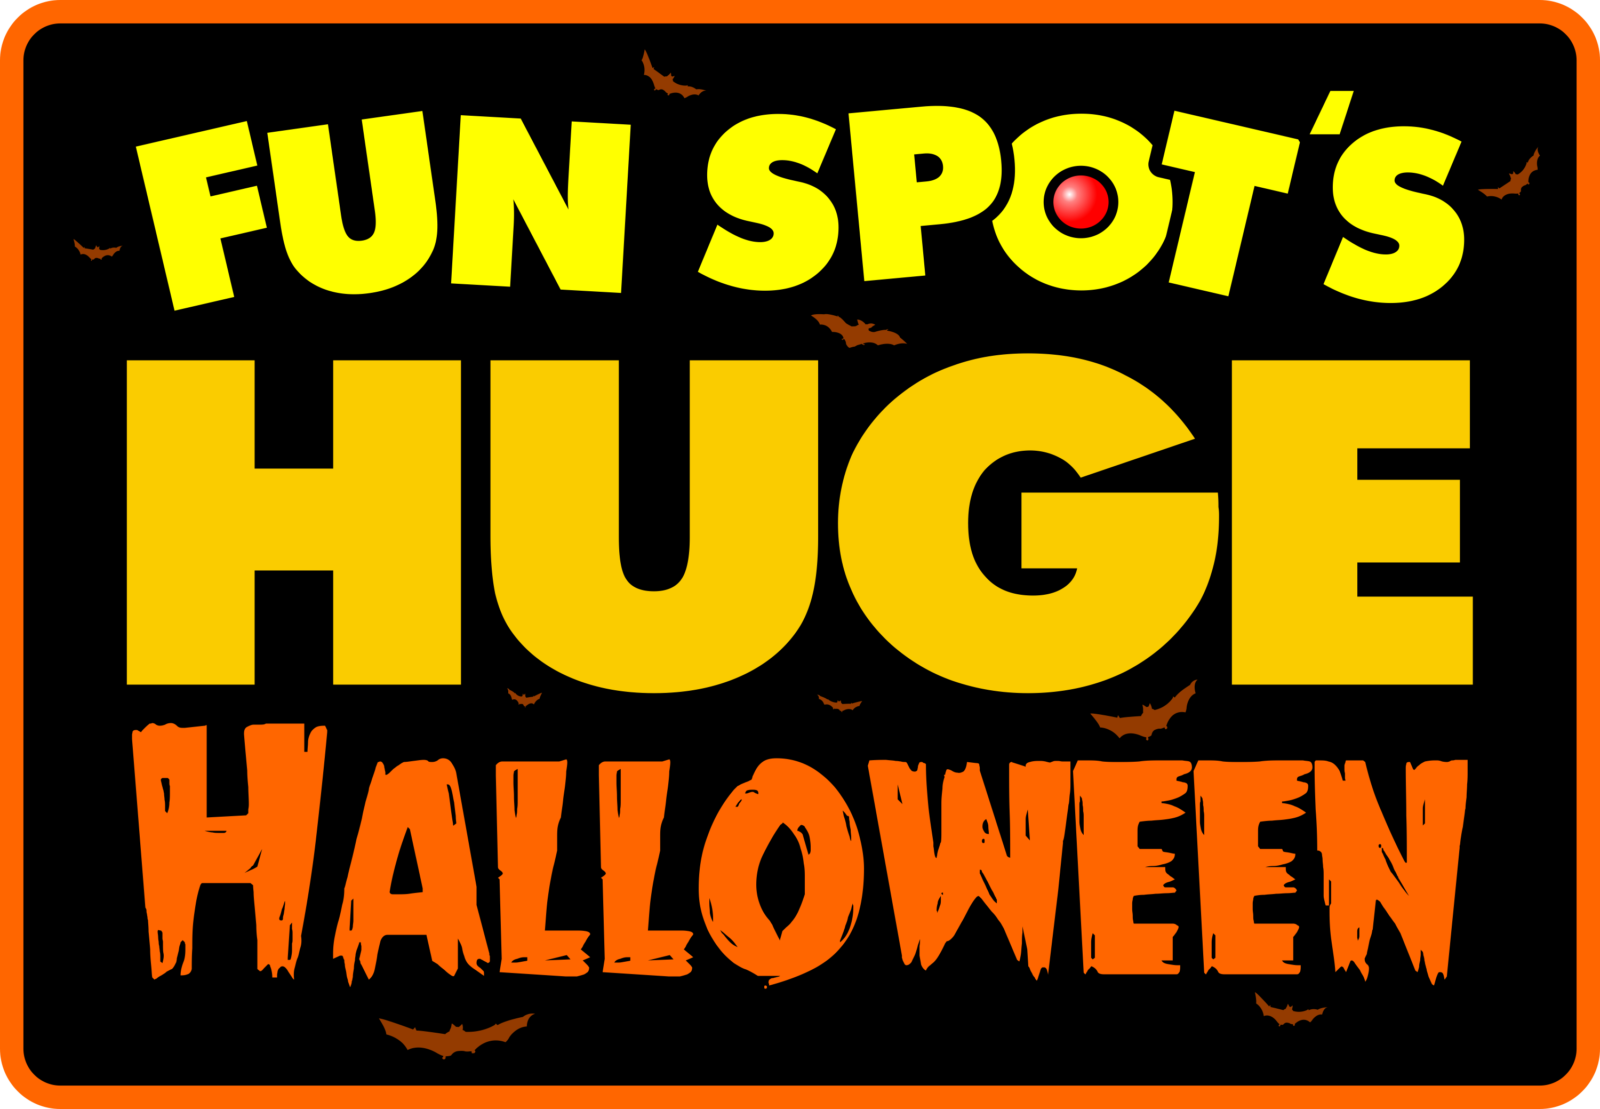 Fun Spot America Huge Halloween On the Go in the Parks